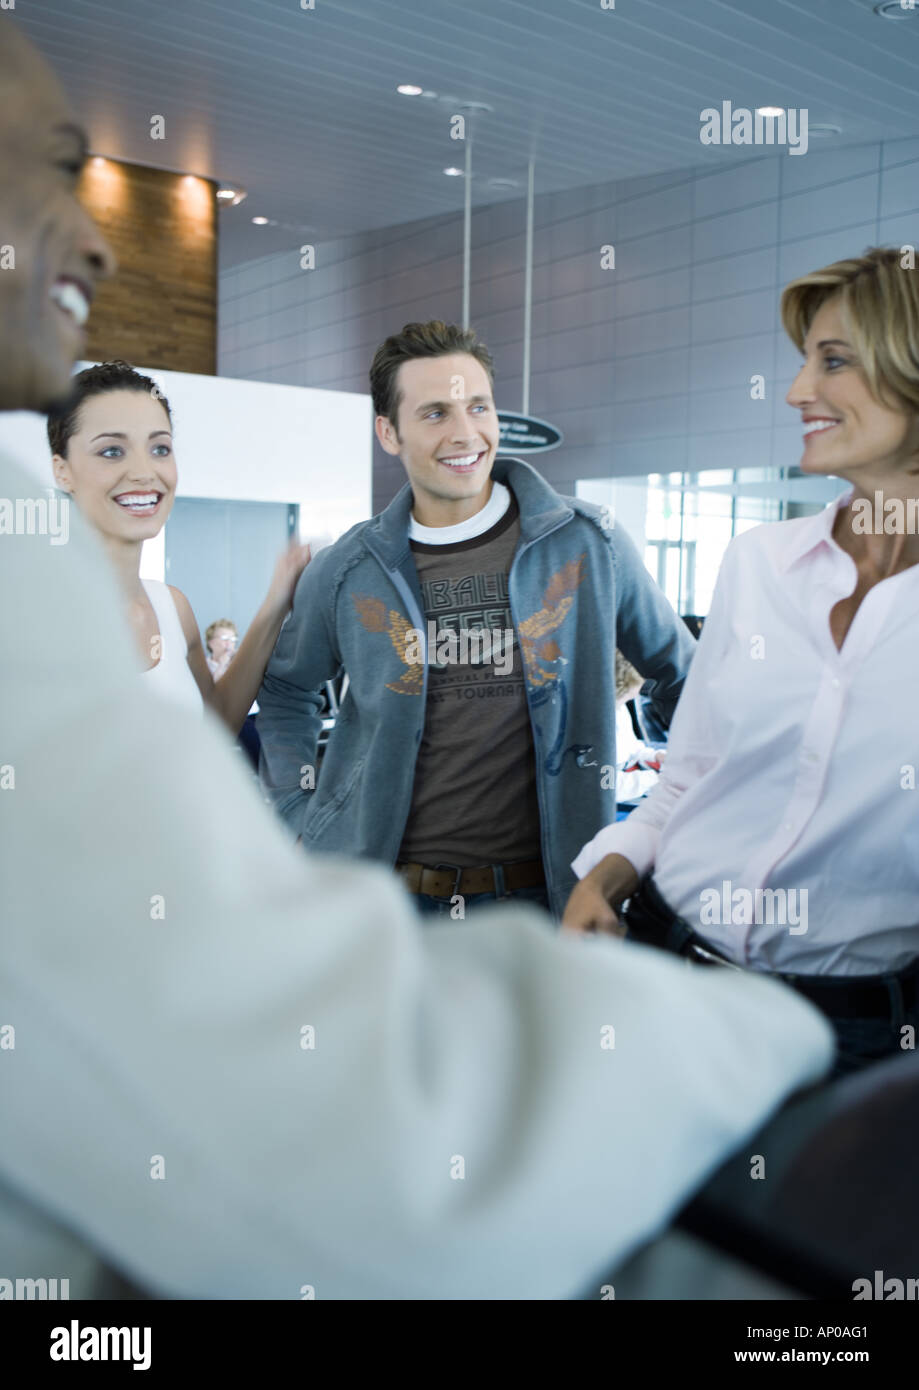 Group of people standing, smiling, in boarding area of airport - Stock Image